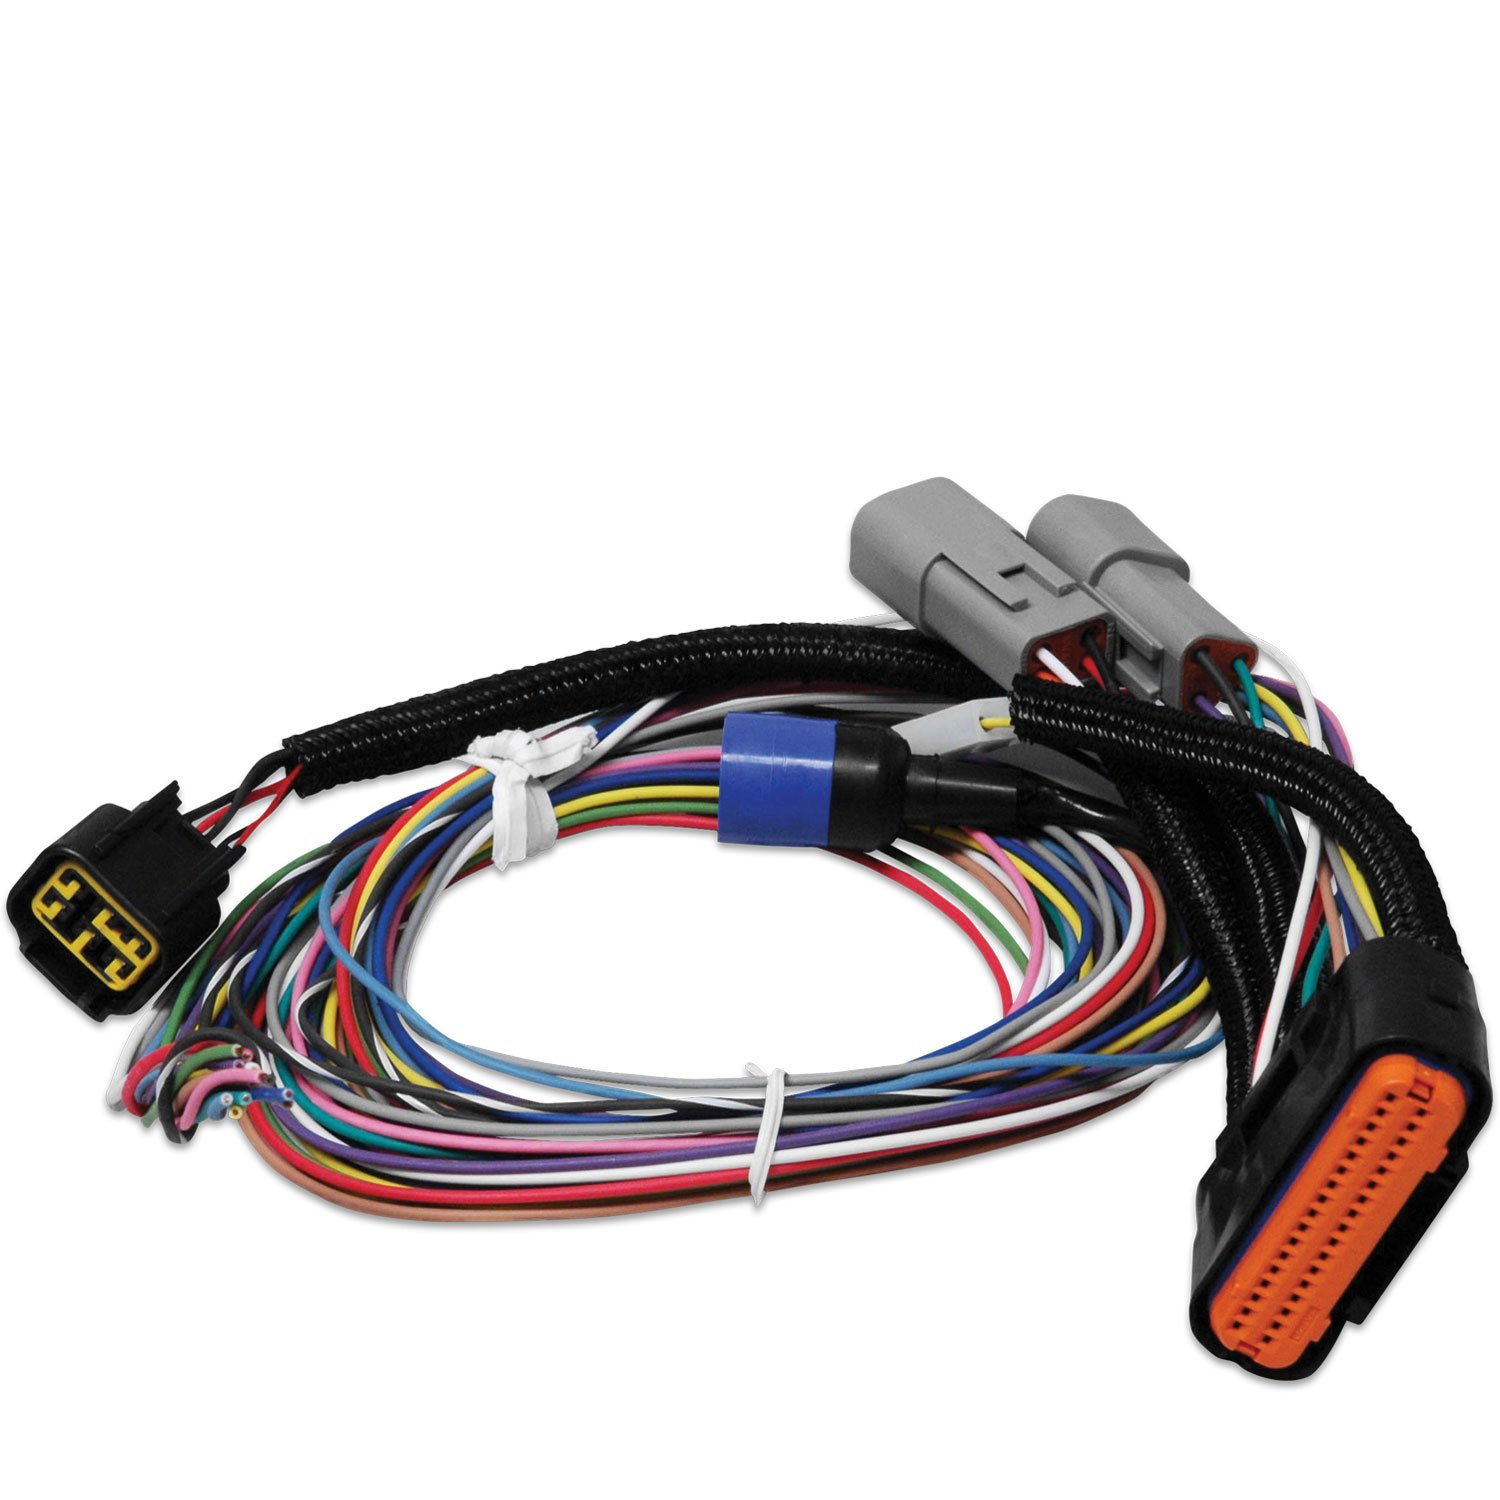 msd 7780 power grid harness replacement msd performance products 7780 power grid harness replacement image